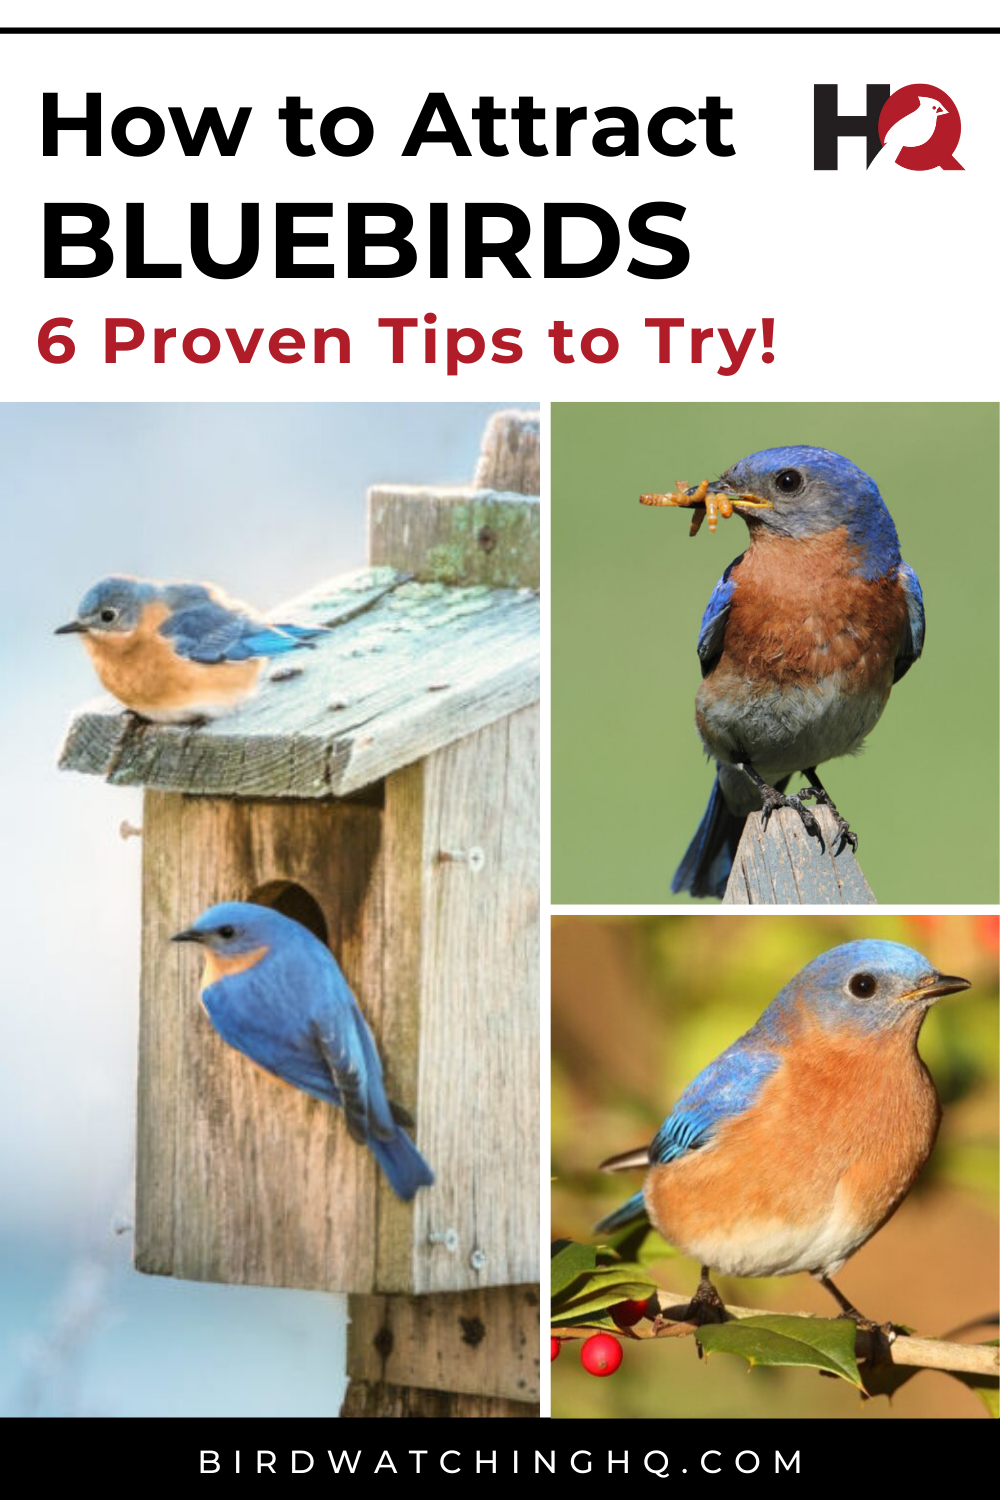 How To Attract Bluebirds: 6 Proven Tips (2020) in 2020 ...